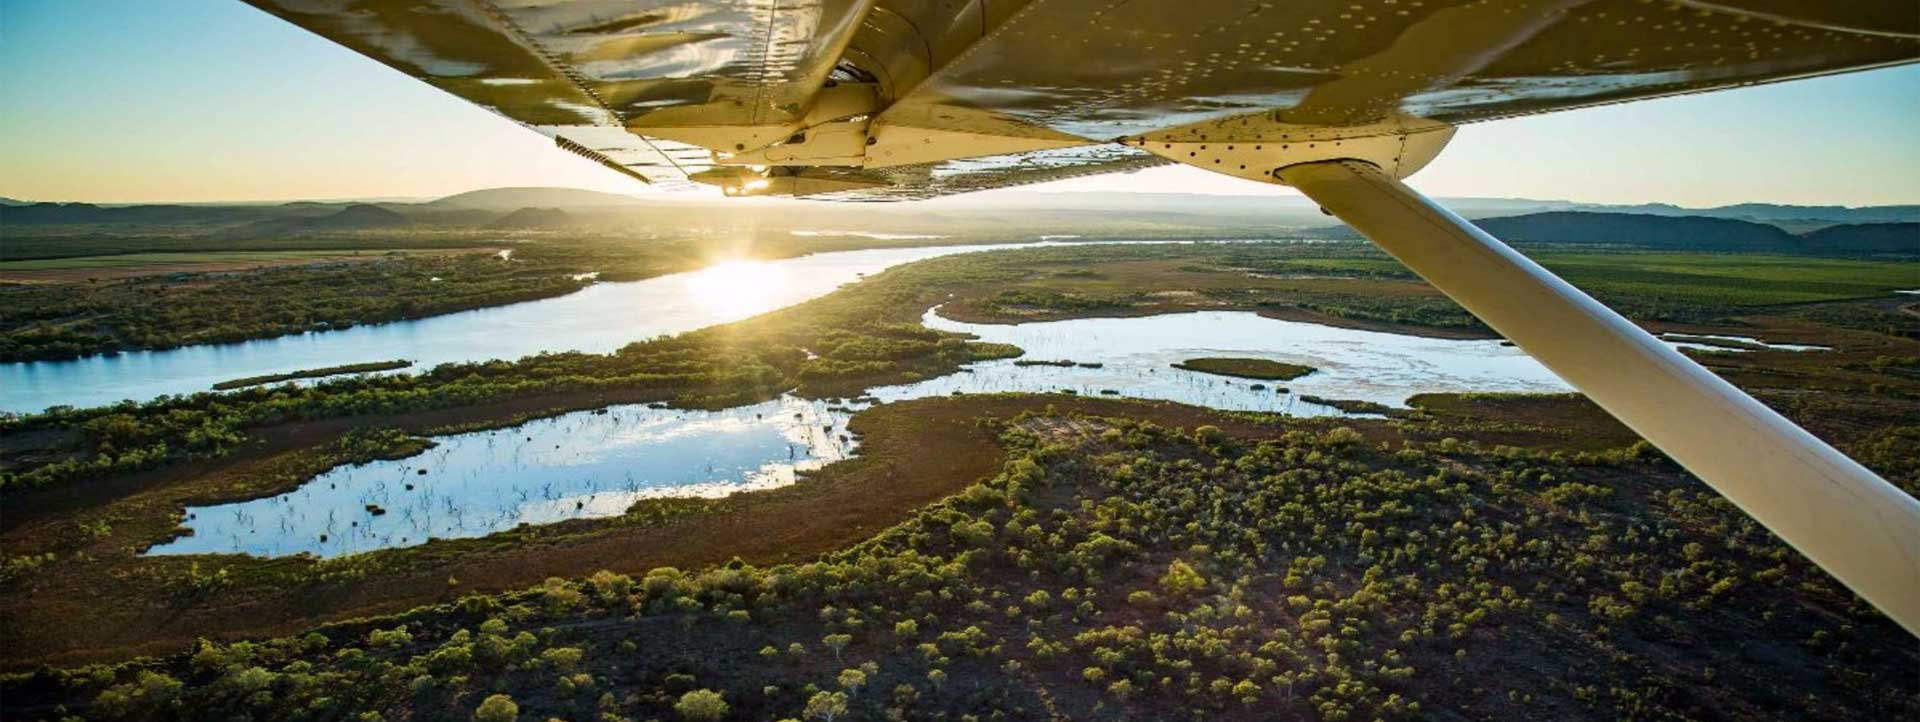 AVAIR-BUNGLE-BUNGLES-evening-water-over-wing-view